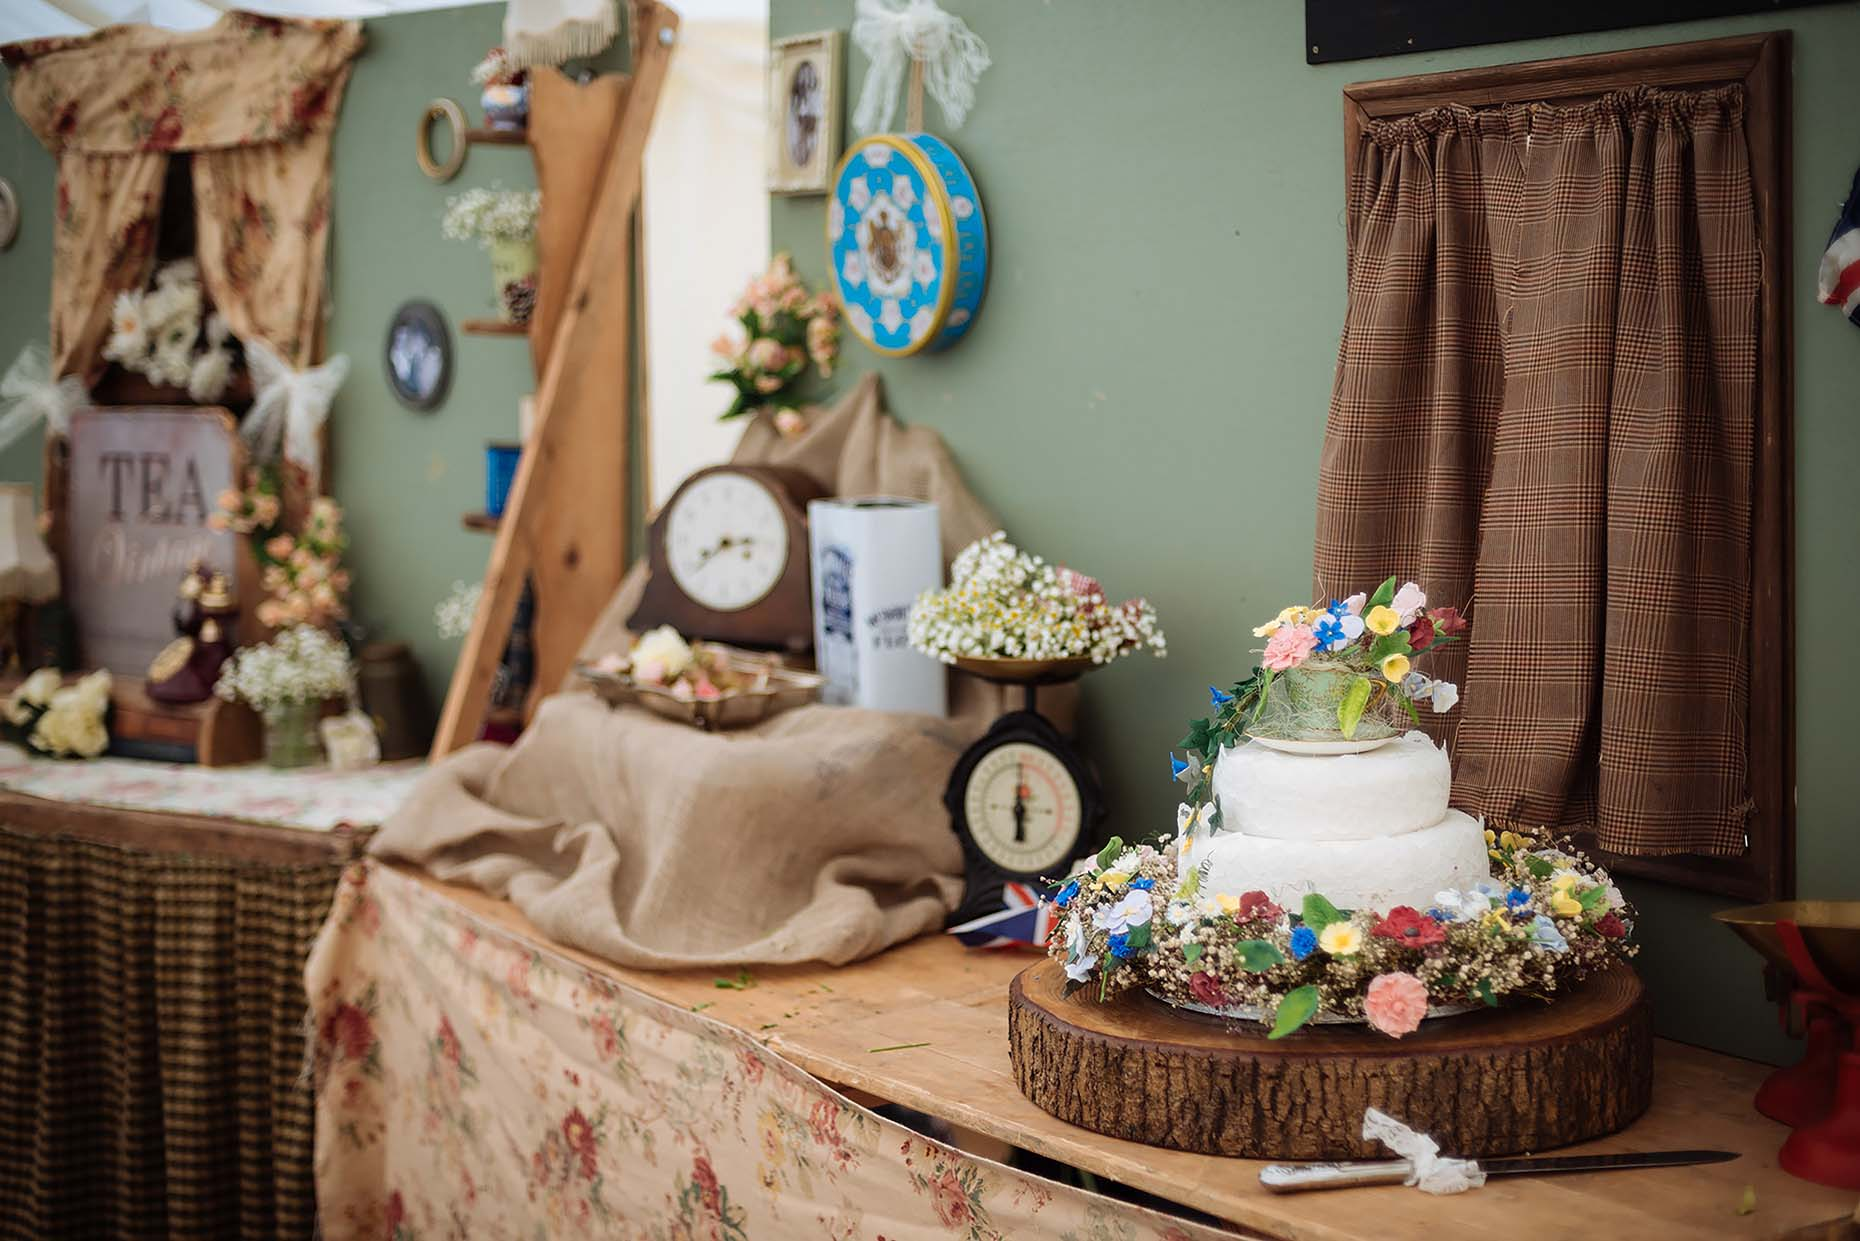 wedding-rural-vintage-decor-style-cake-30